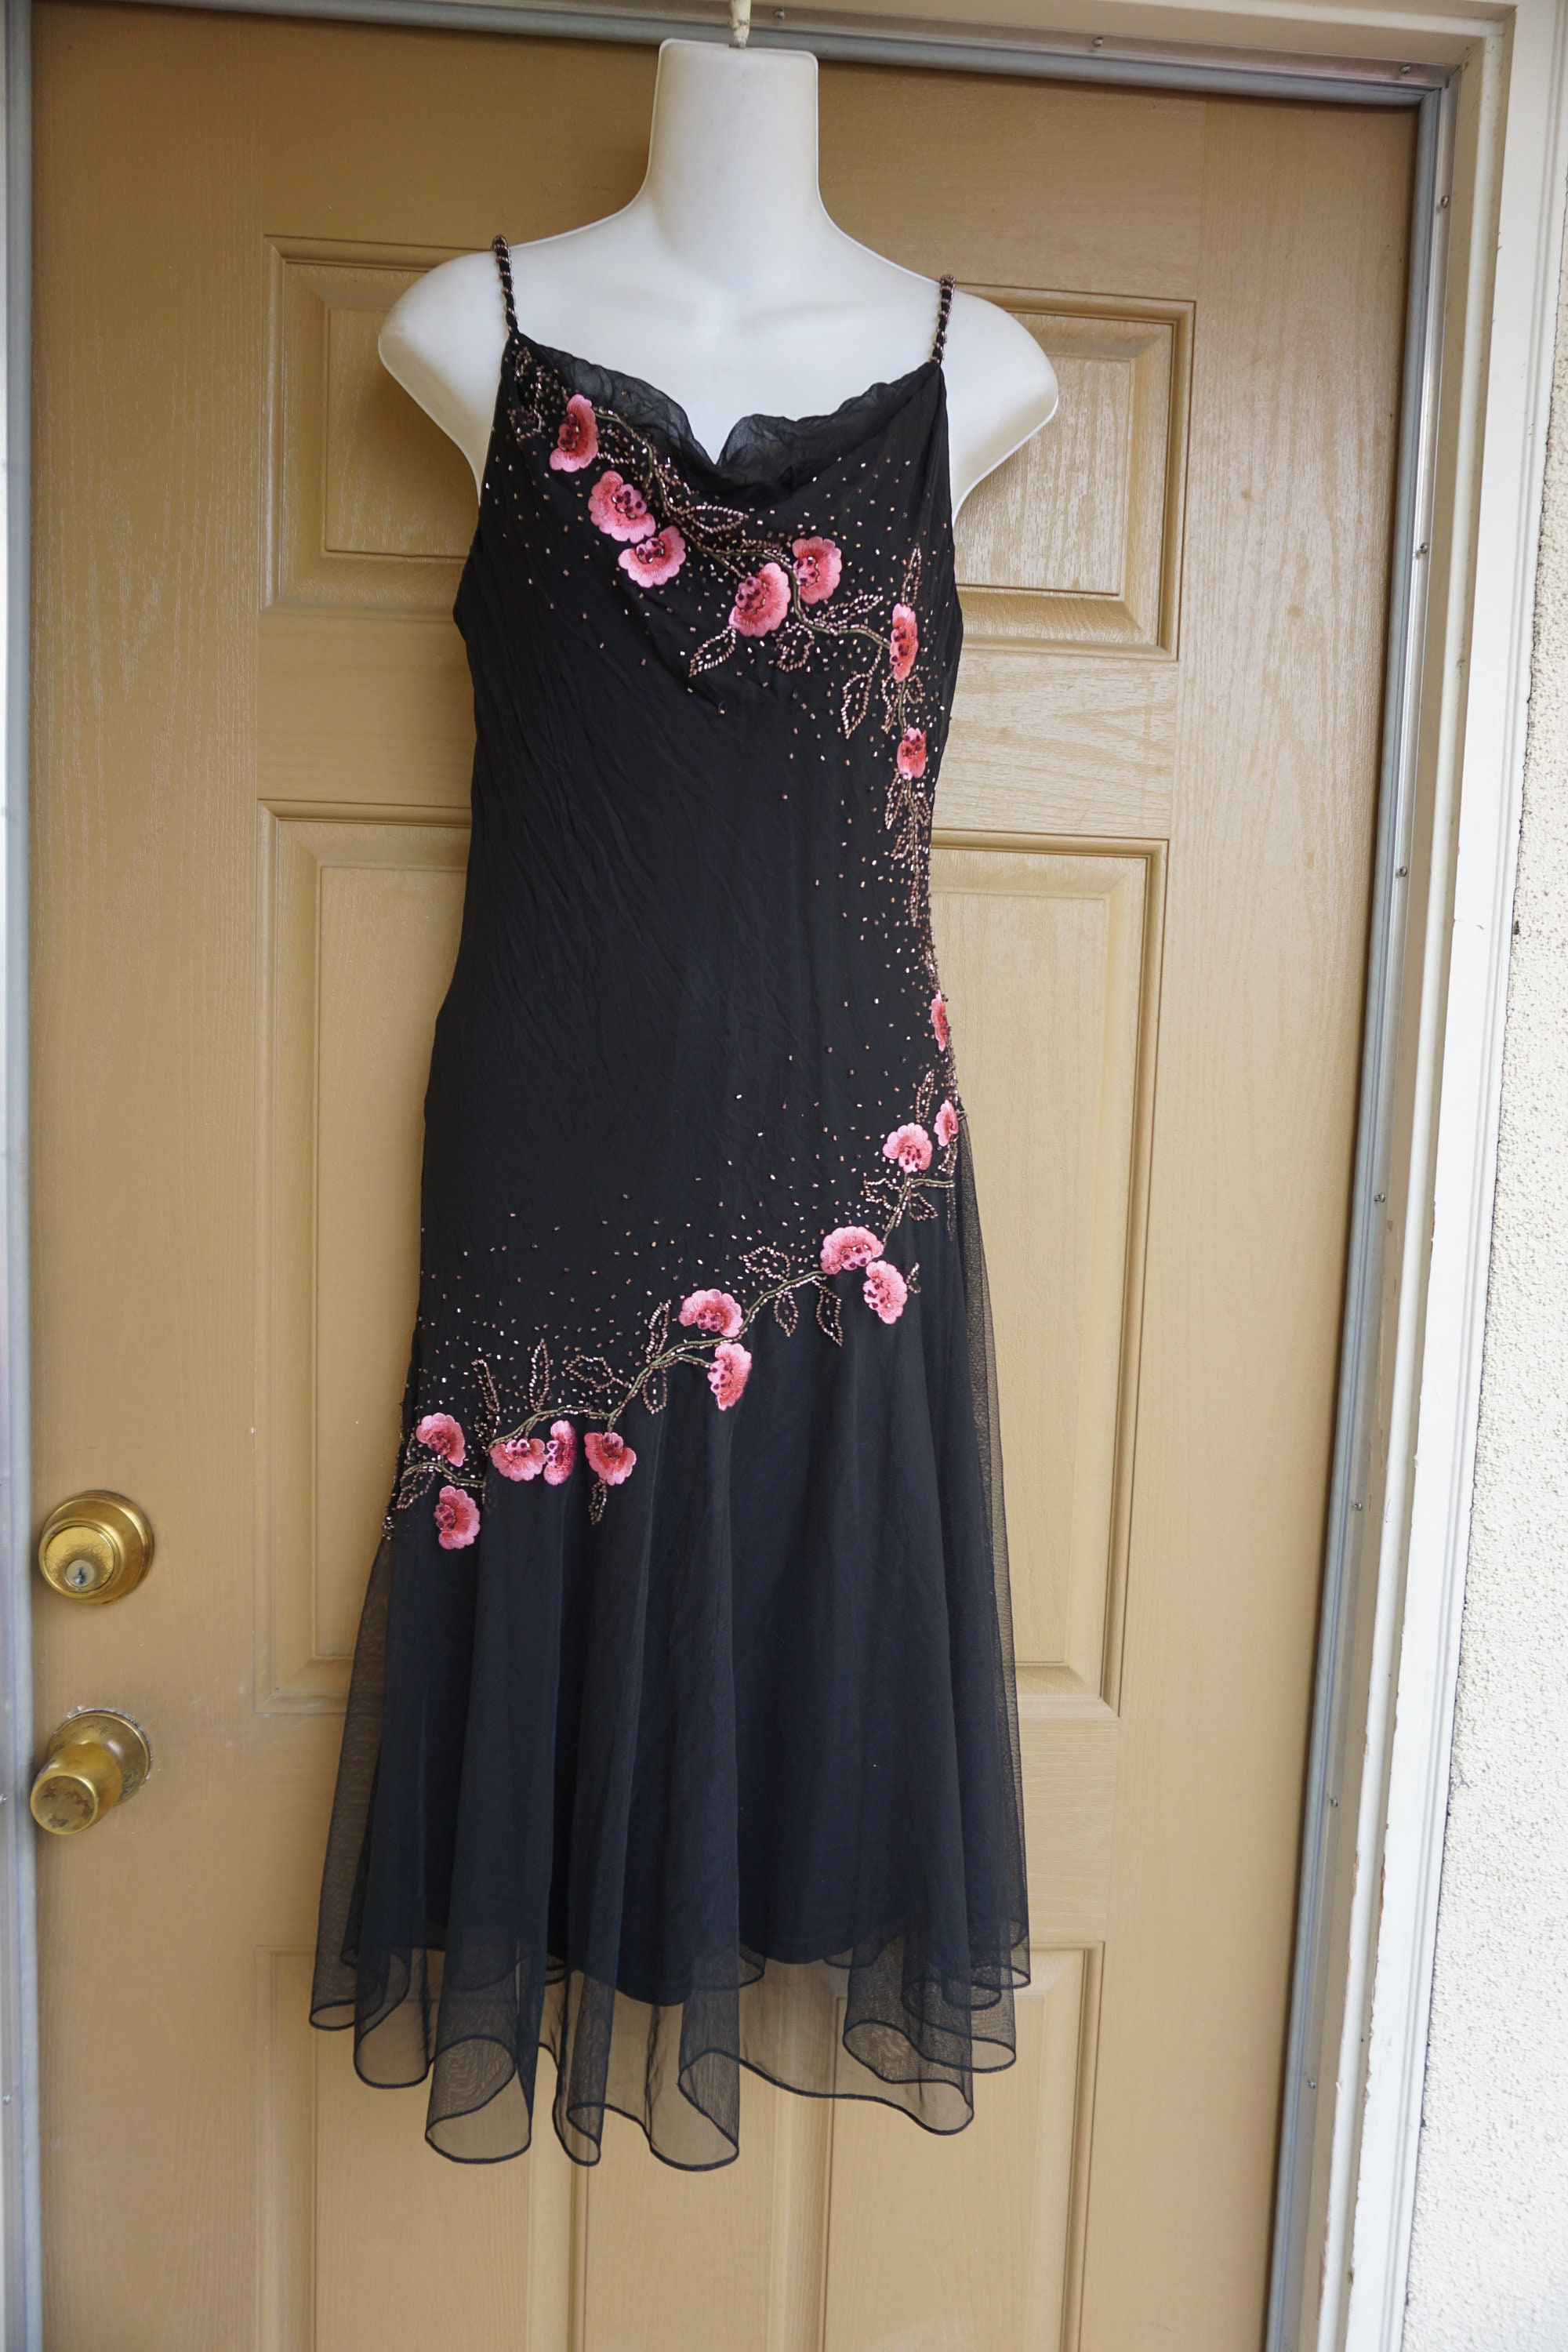 80s Dresses   Casual to Party Dresses xscape By Joanna Chen Vintage Size S Black Party Dress High Fashion Womens Clothing 1980S 80S Beaded Sparkly $0.00 AT vintagedancer.com